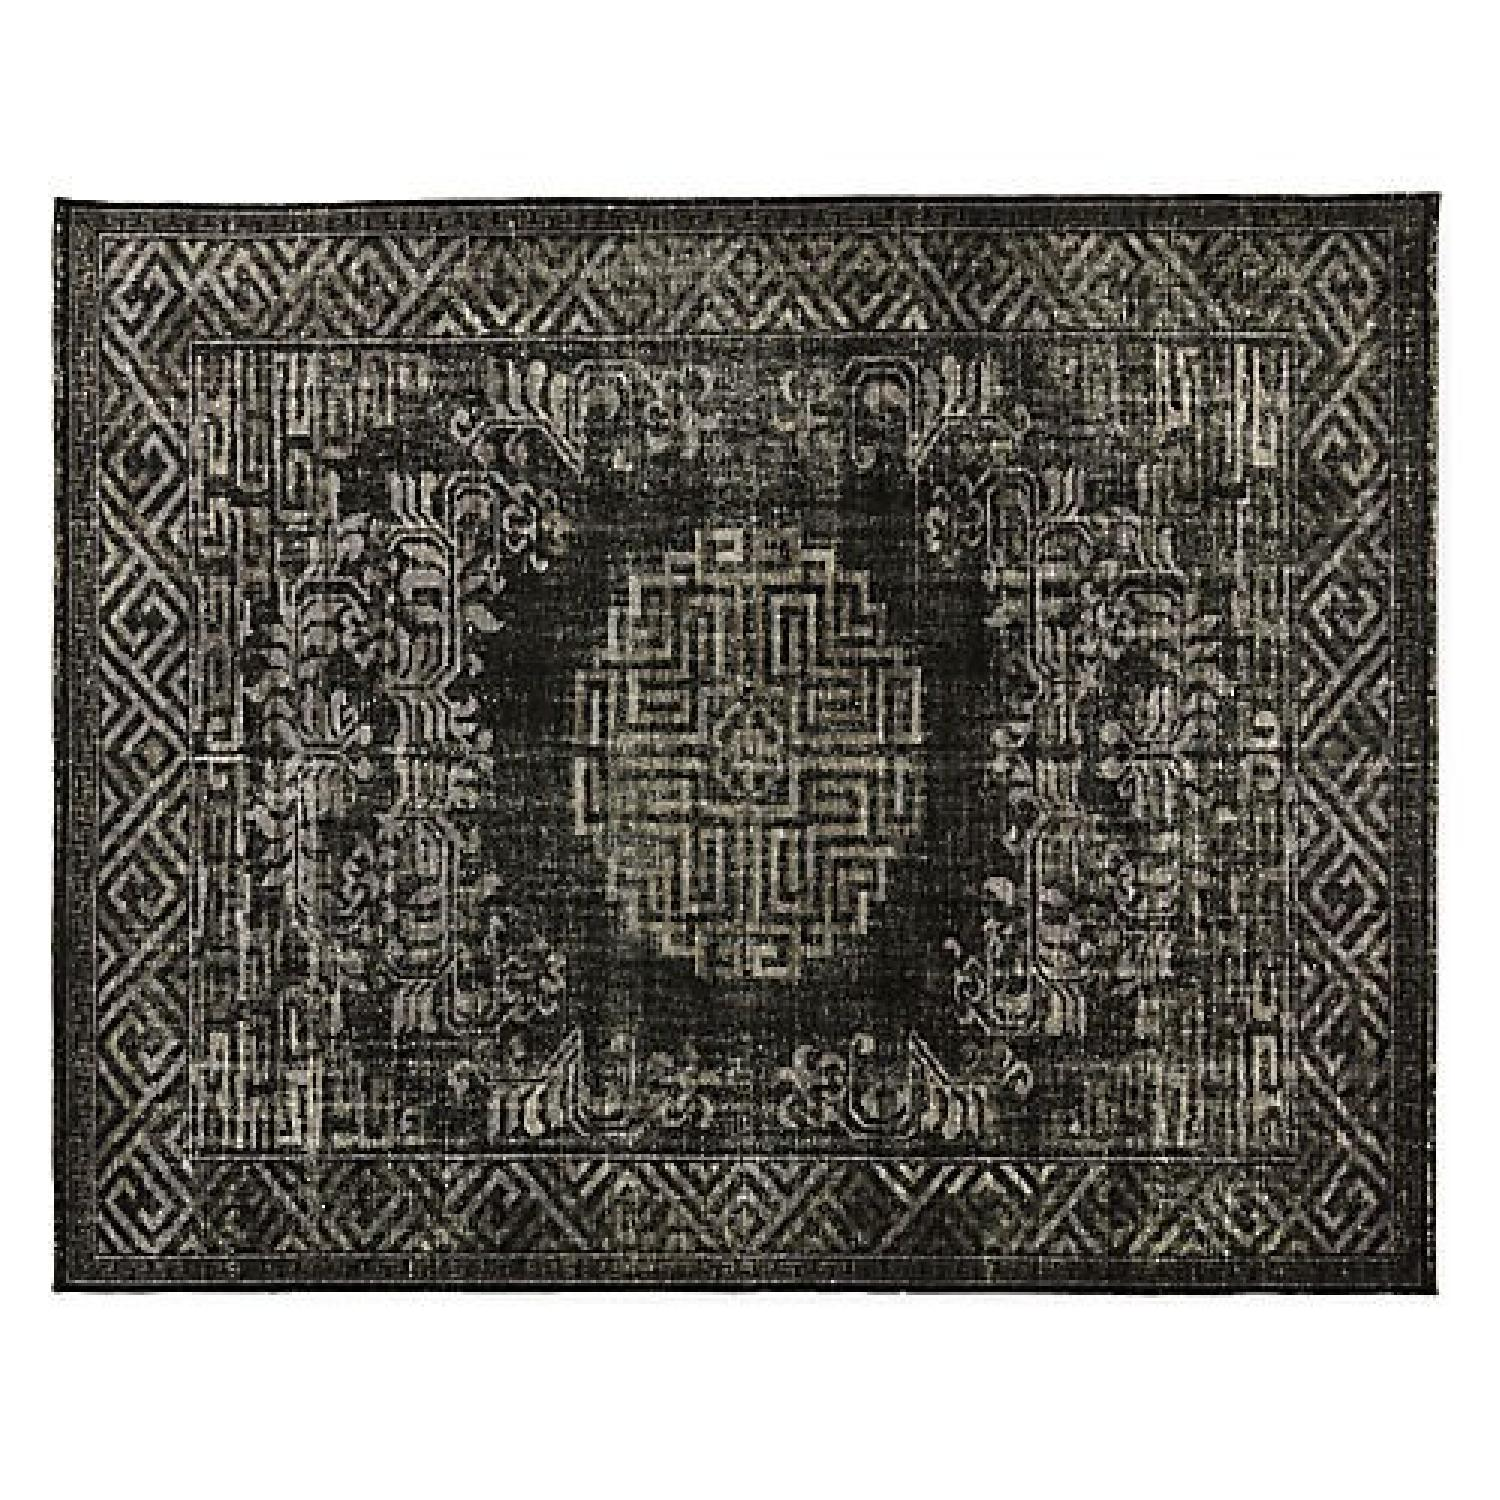 Room & Board Black Onyx Amira Rug - image-0